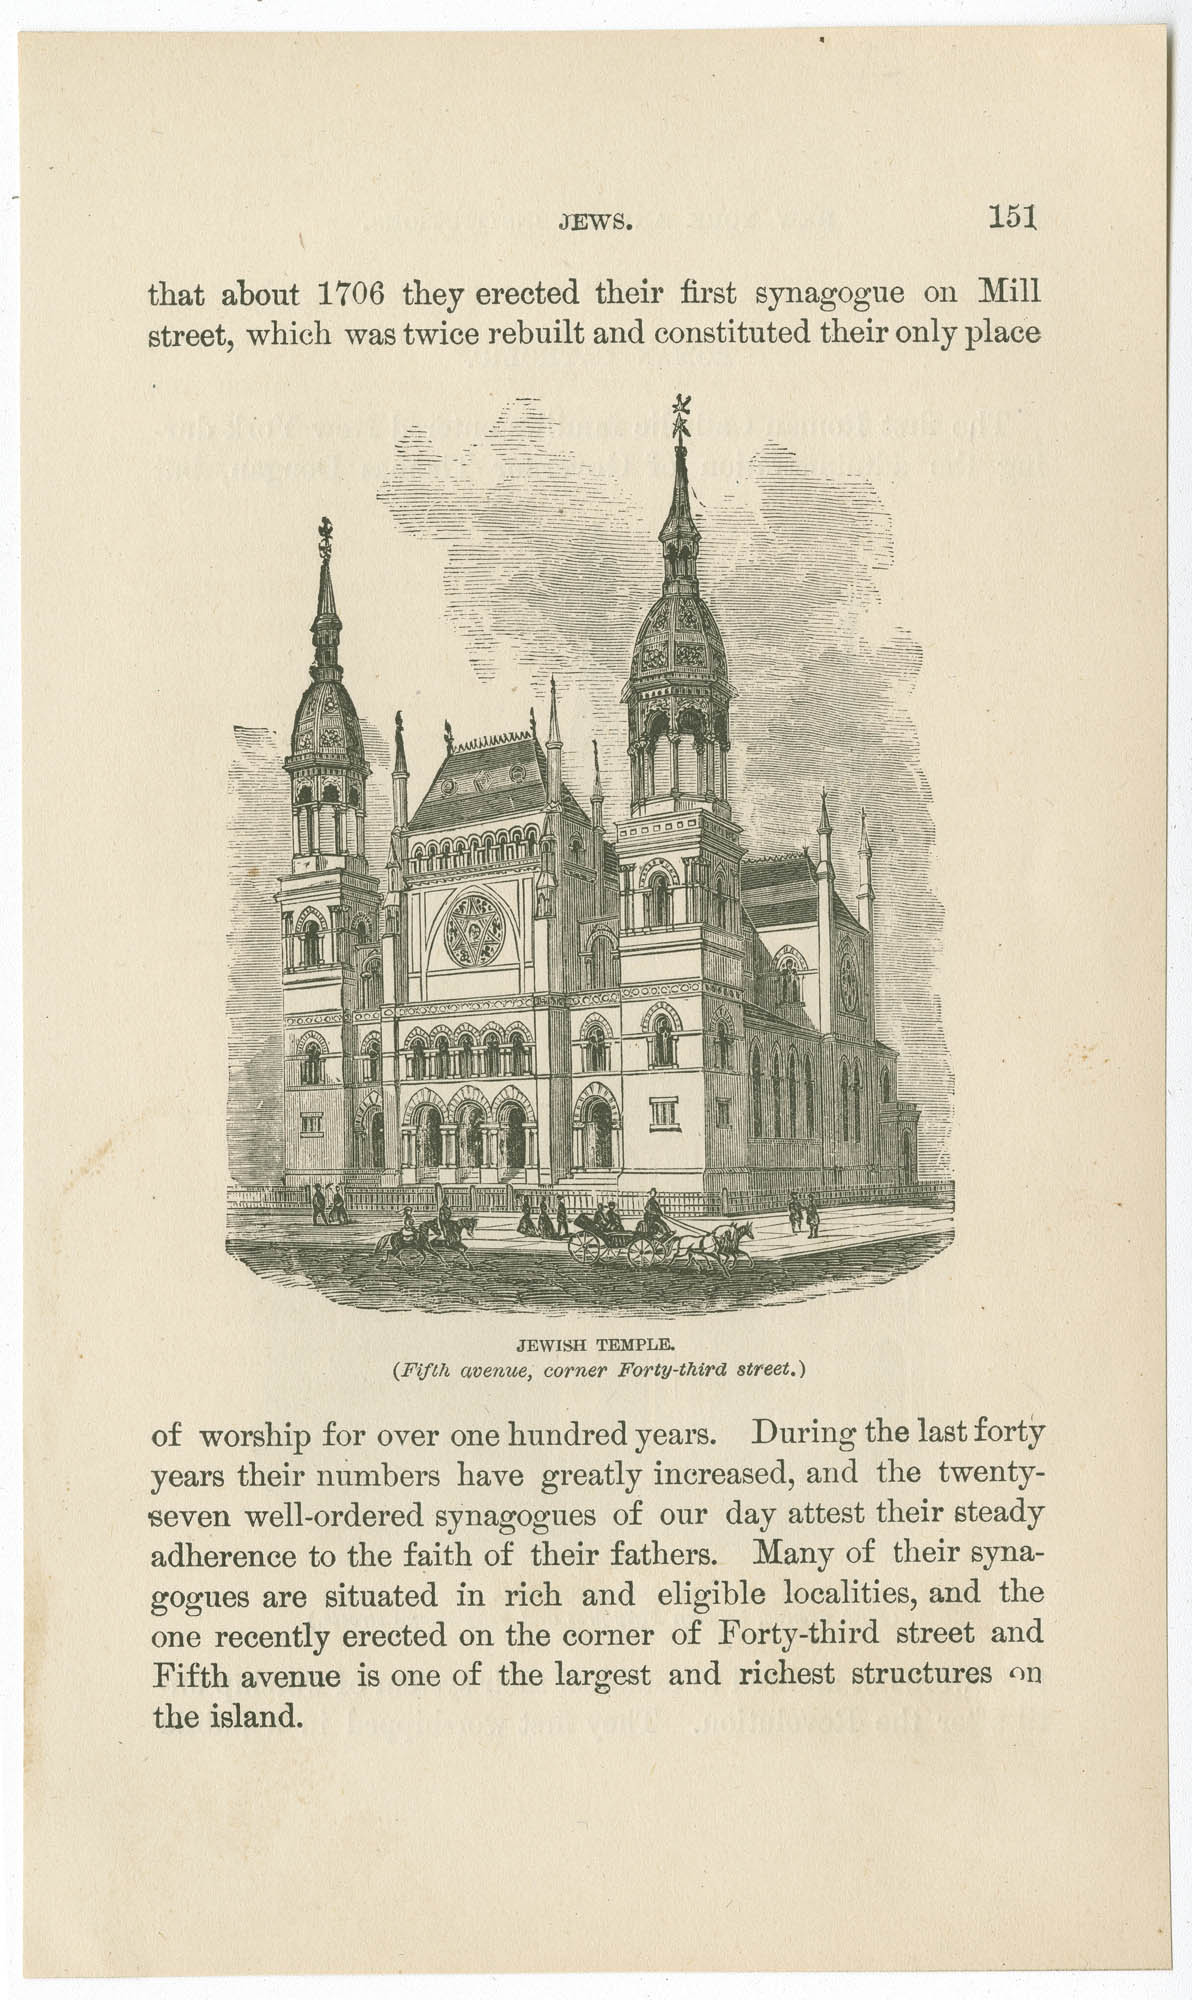 Jewish Temple (Fifth Avenue, corner Forty-Third Street)